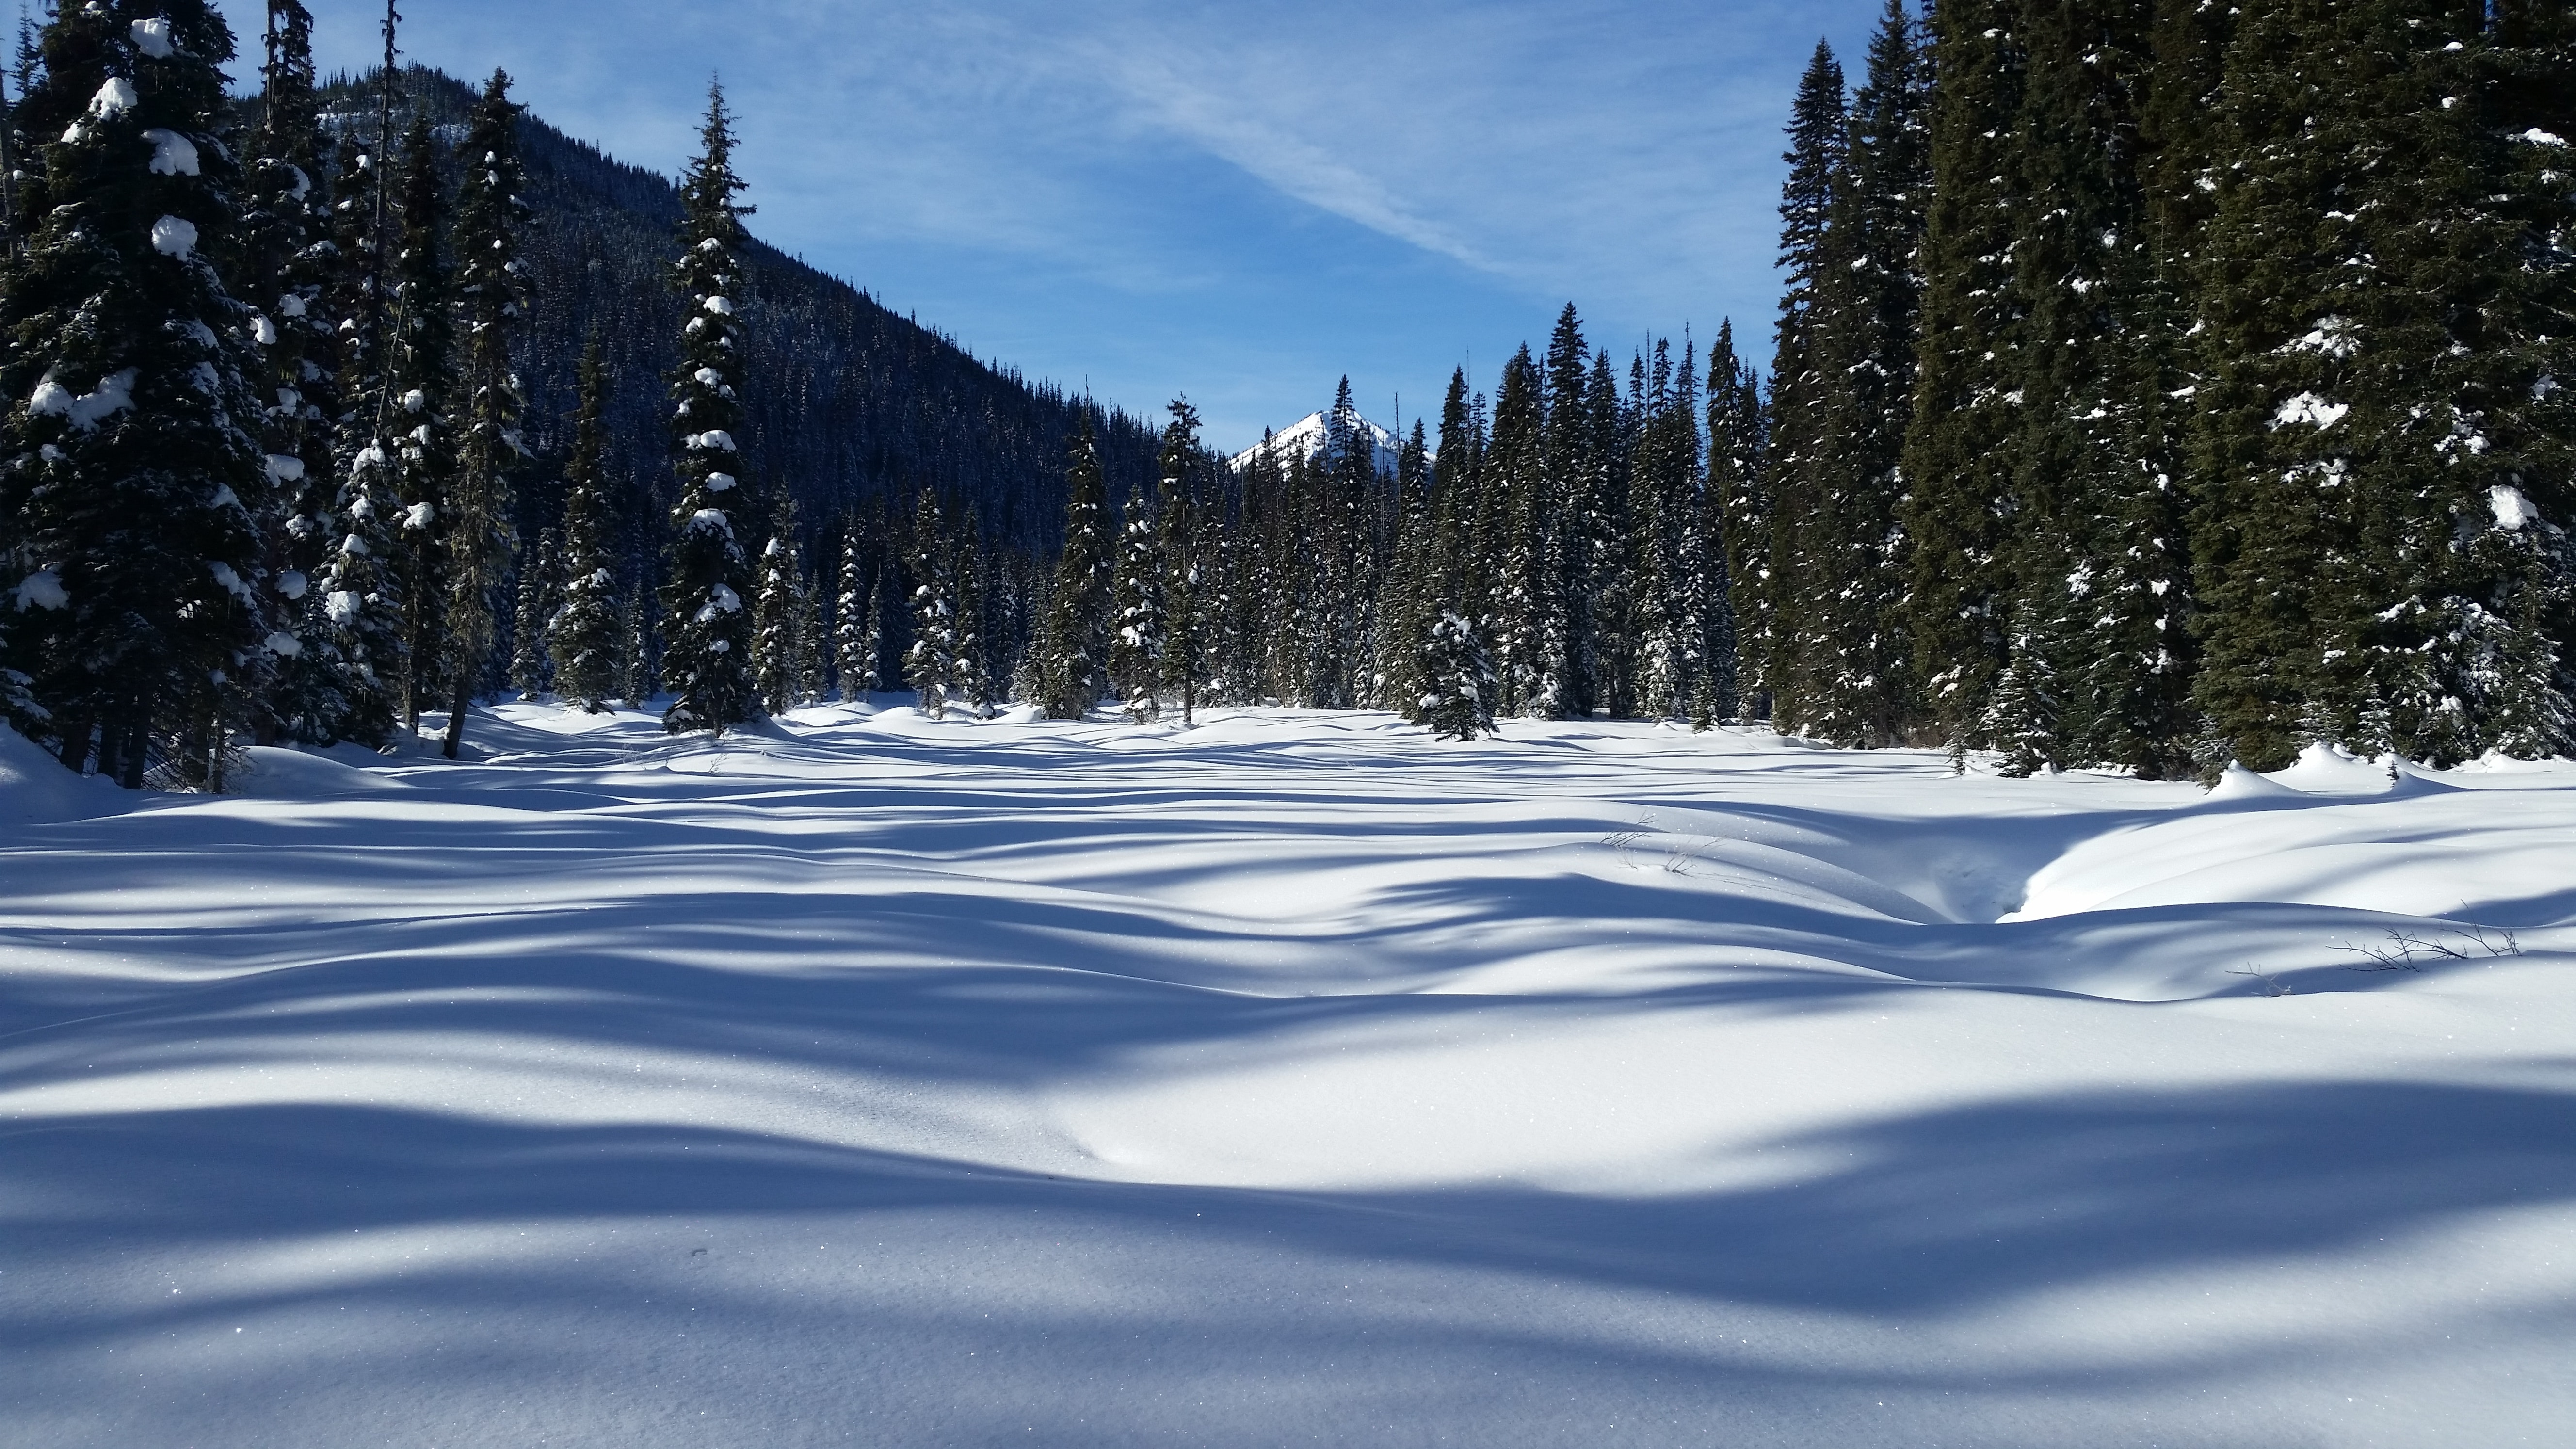 snow covered terrain with pine trees